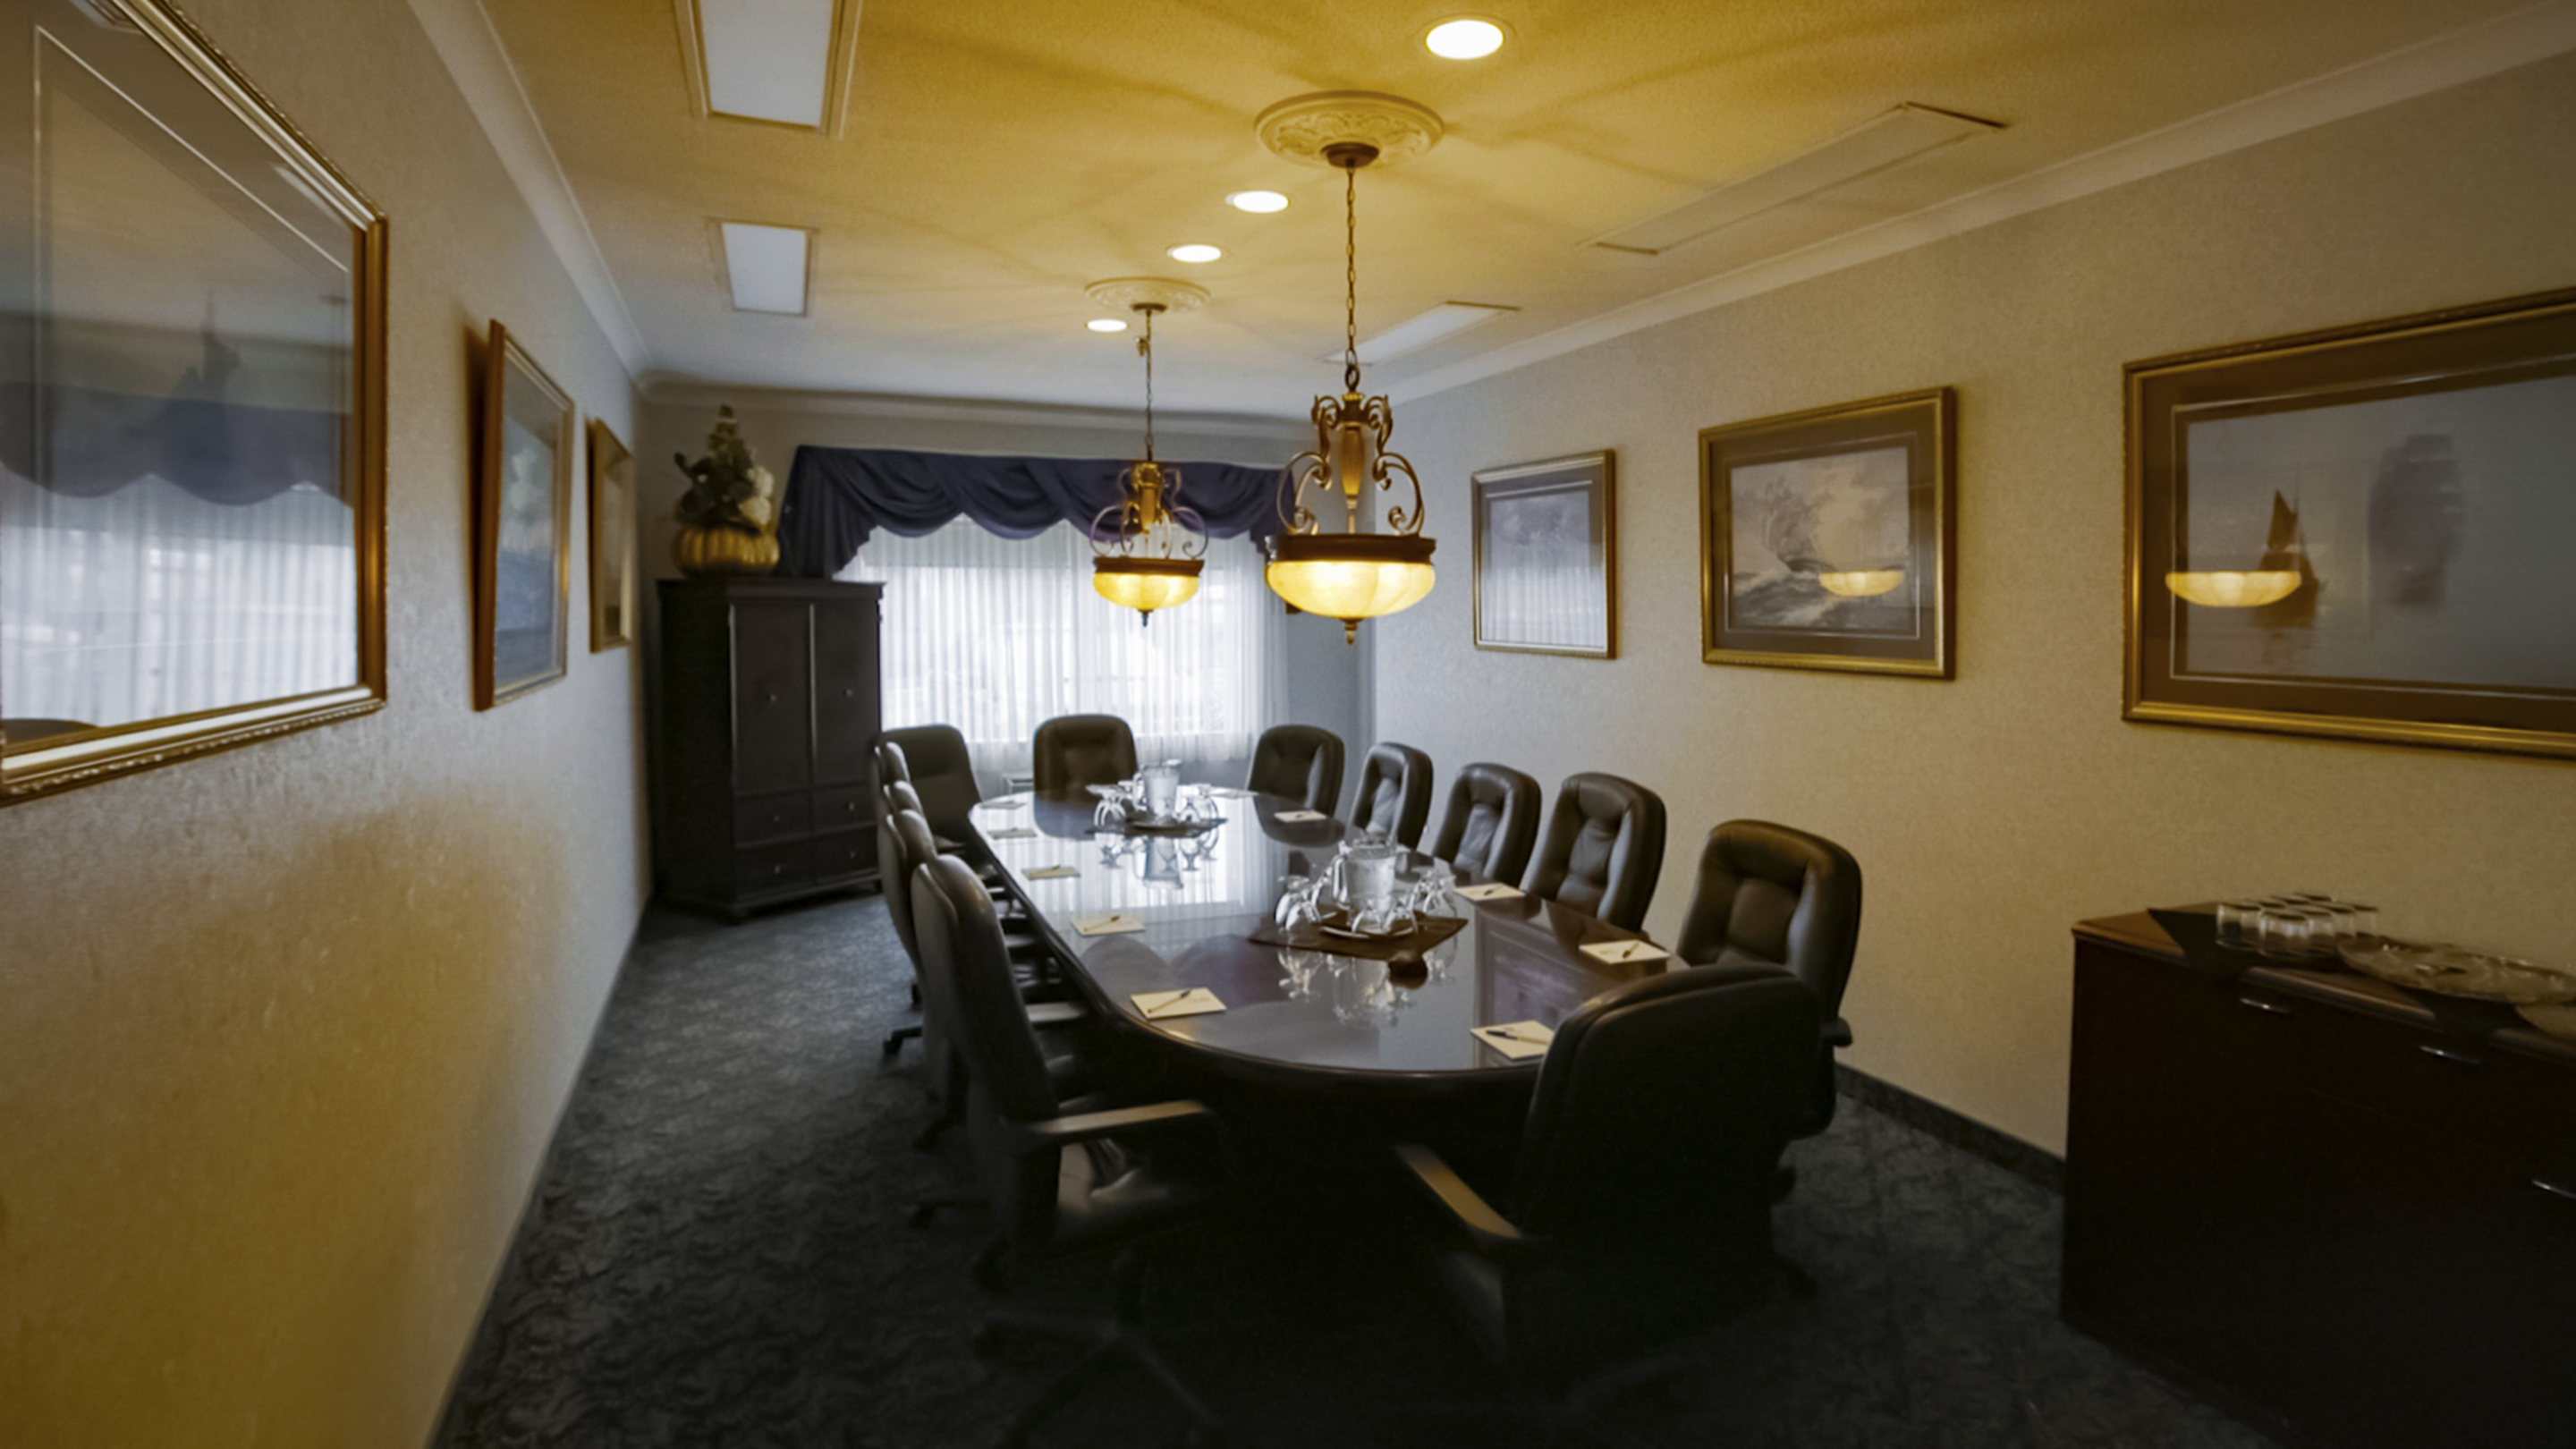 8706.11736.dartmouth.hearthstone-inn-halifax-dartmouth.amenity.meeting-rooms.01